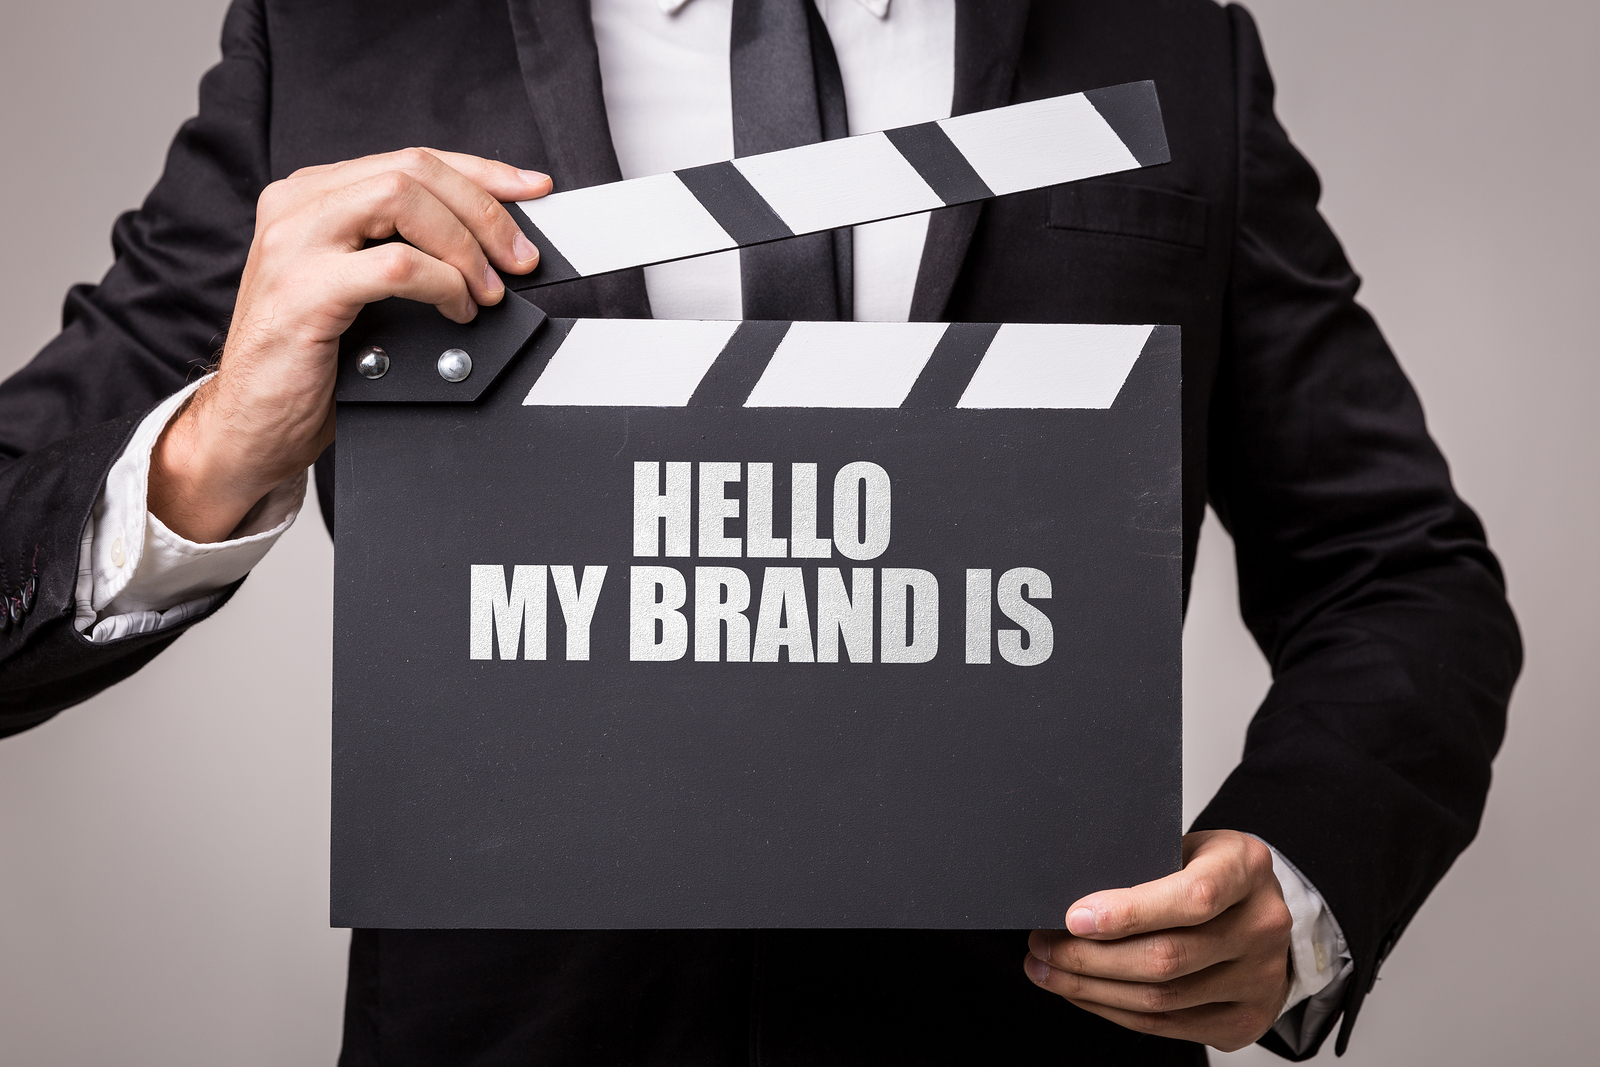 brand awareness - how to plan a corporate event